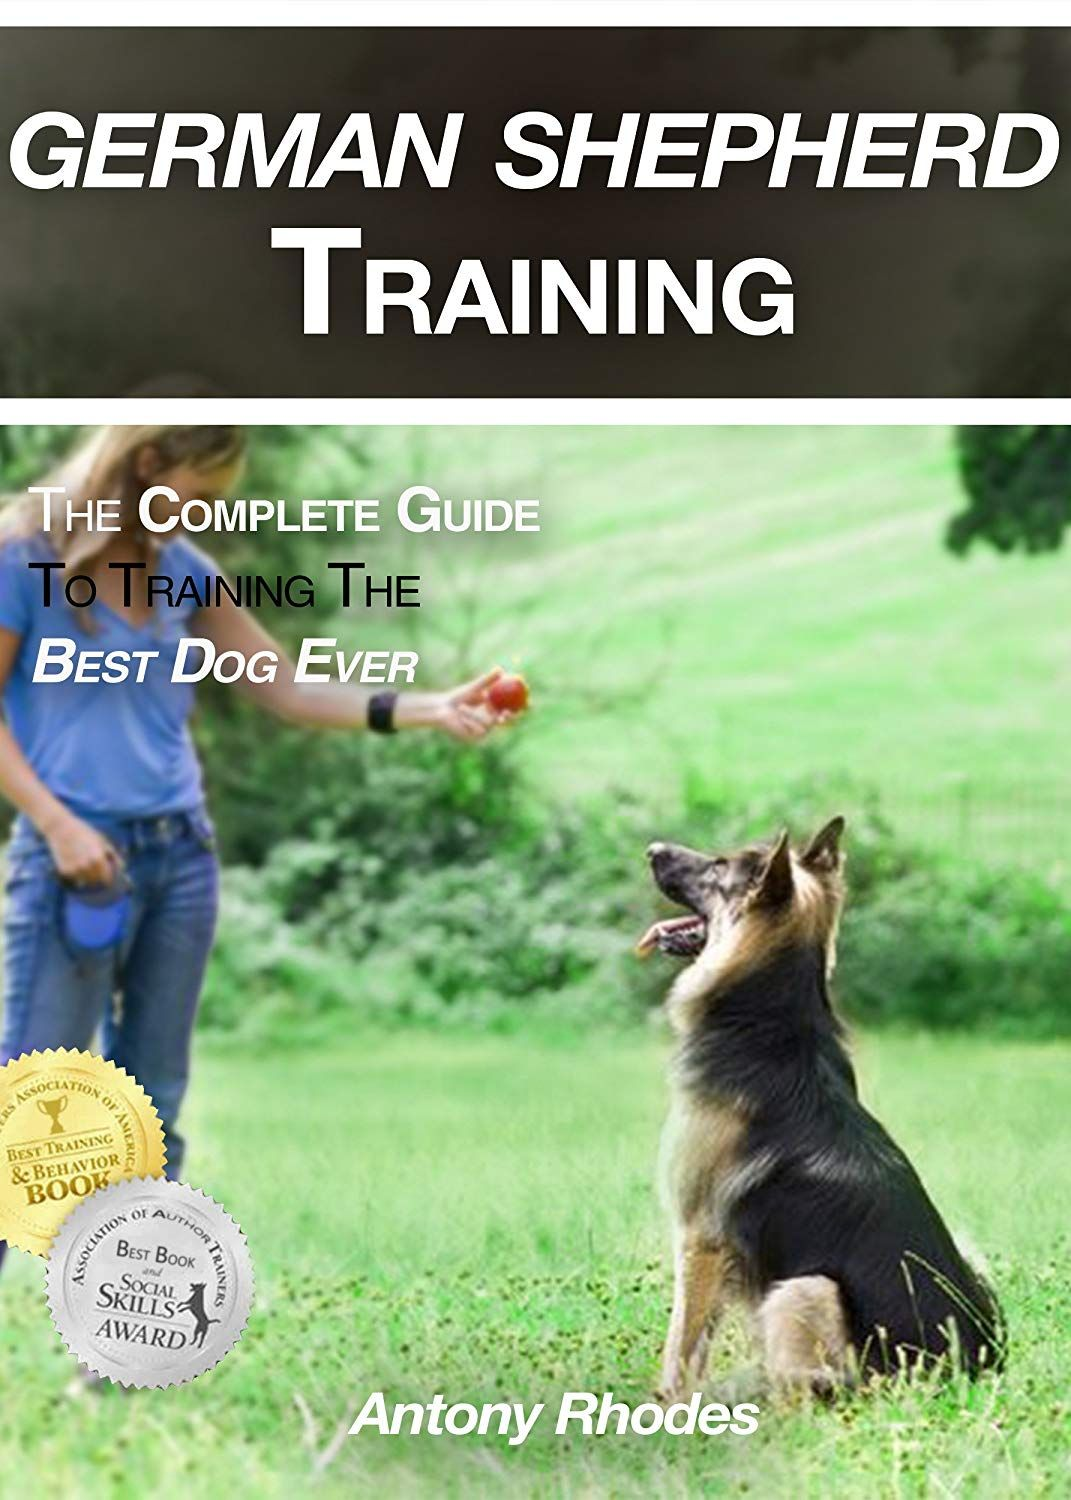 German Shepherd Training The Complete Guide To Training The Best